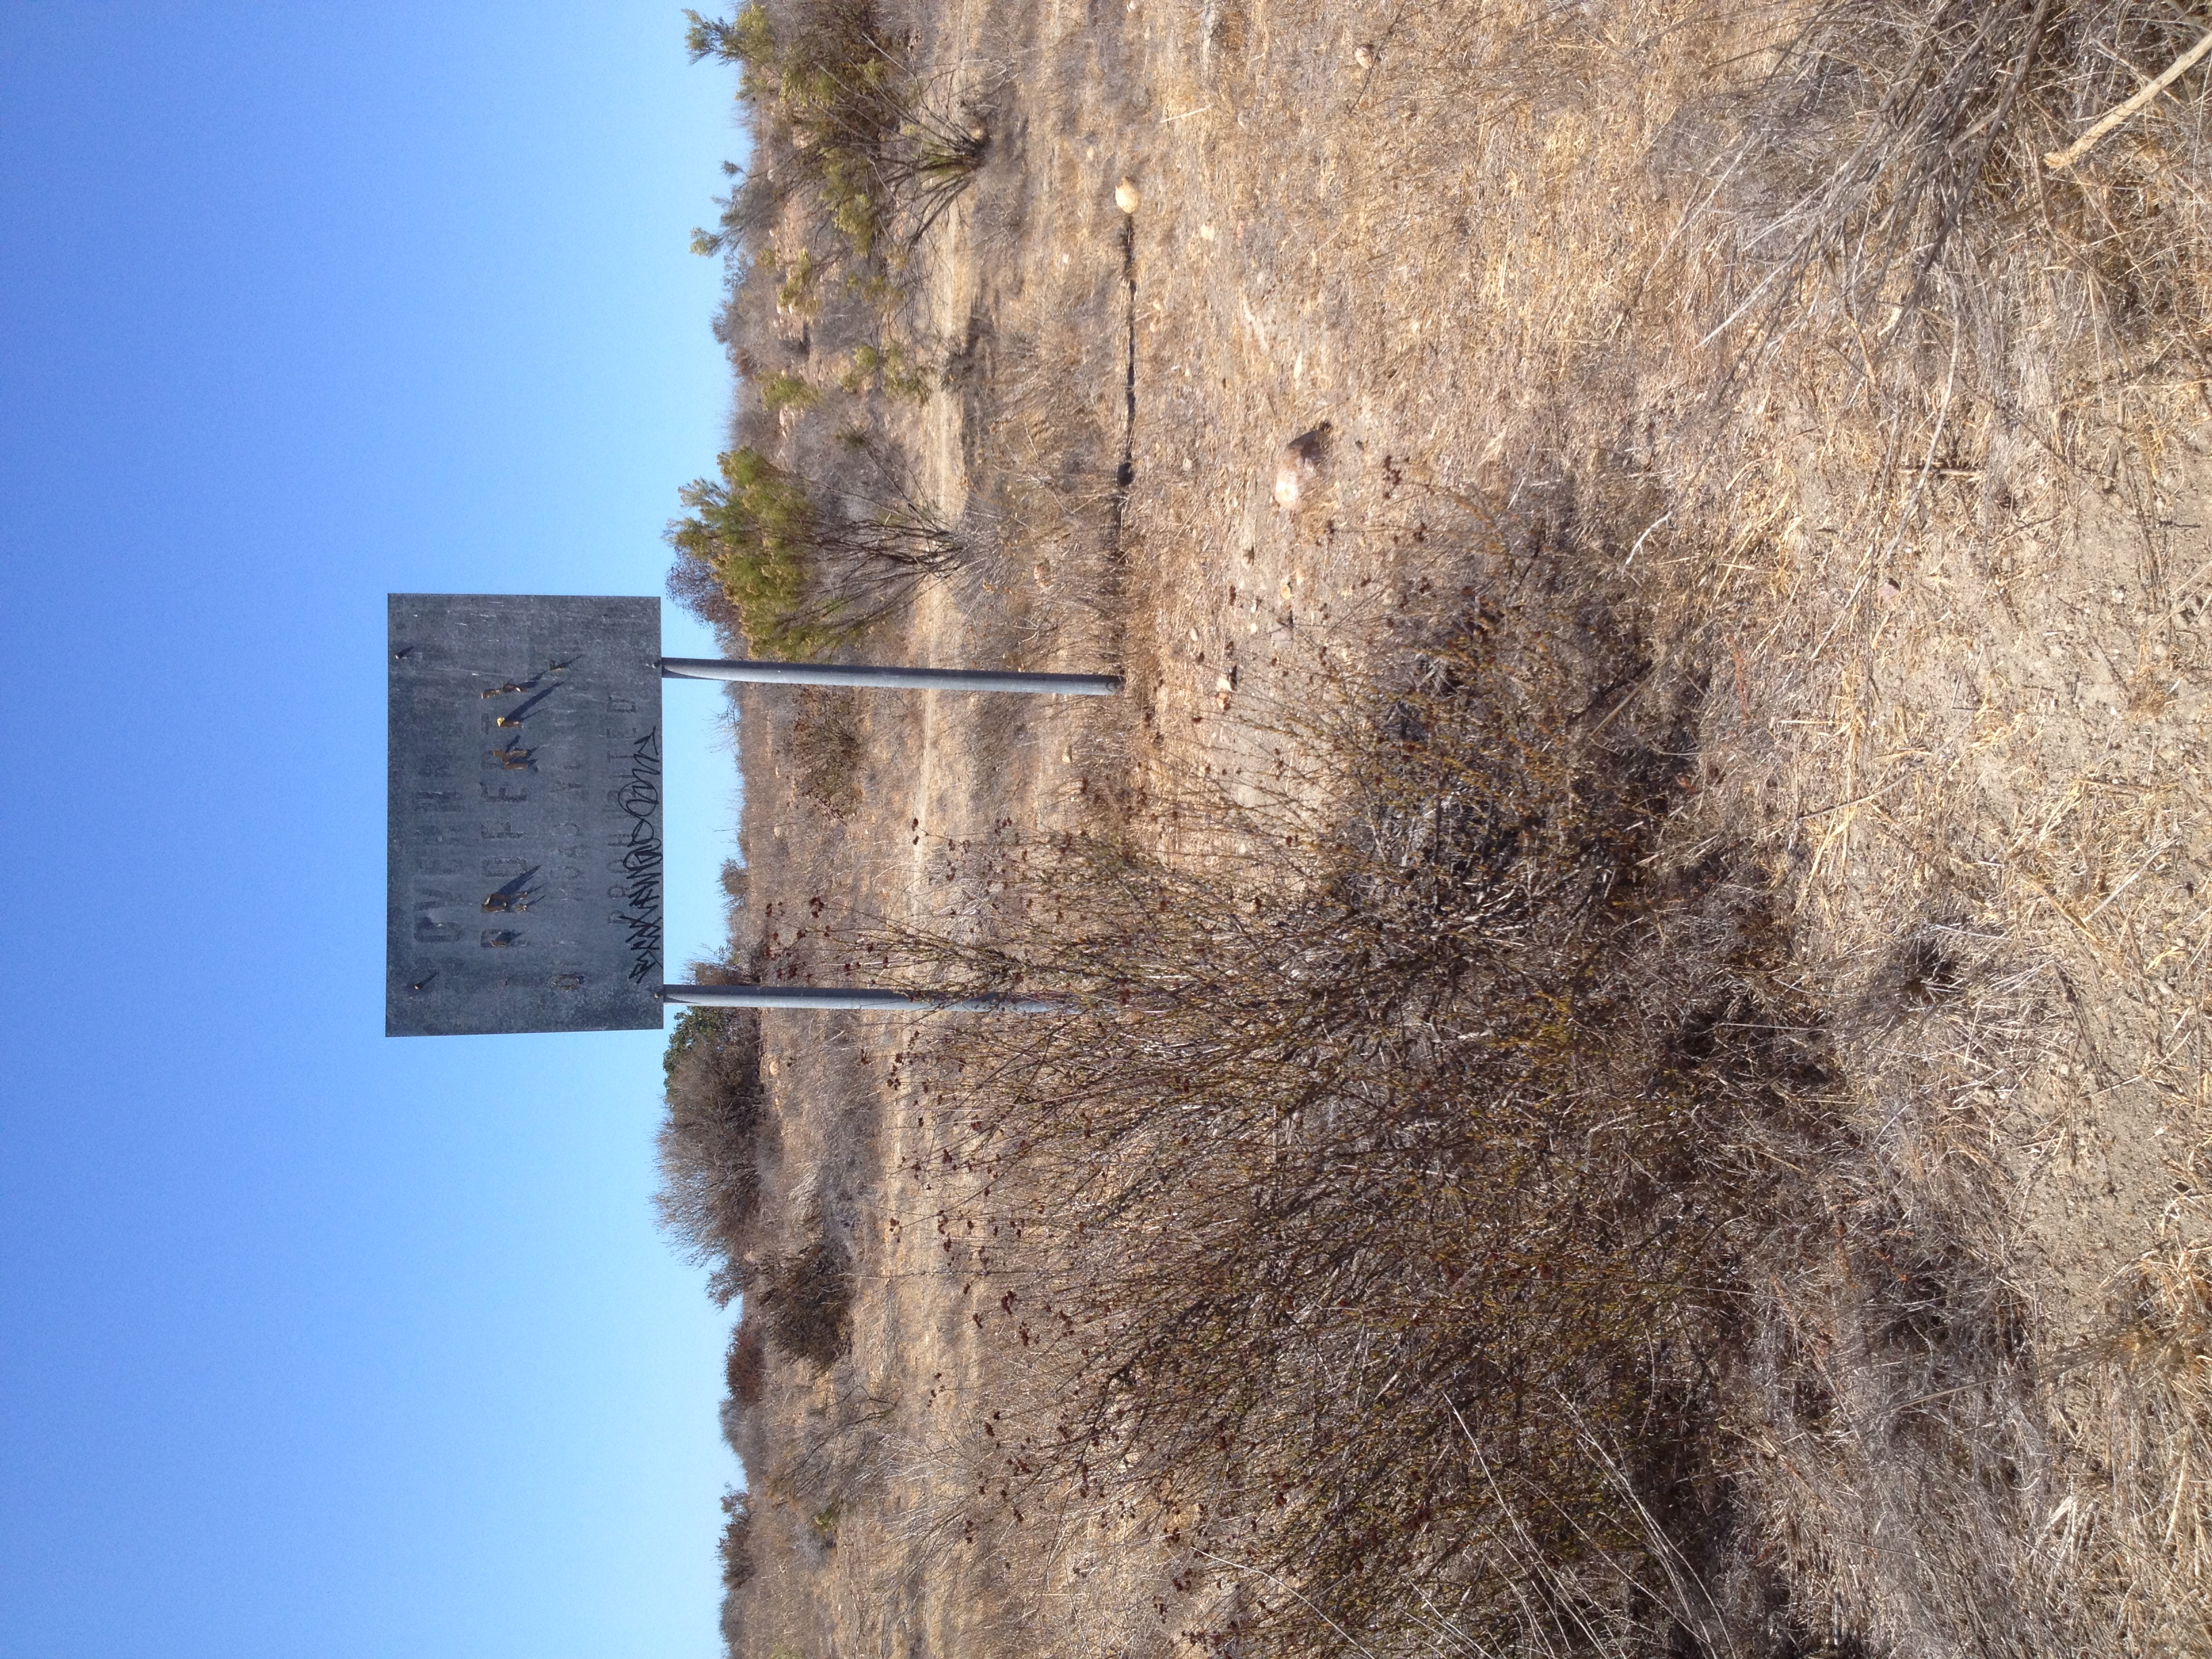 """Government Property"" sign viewed in Mission Trails Regional Park, San Diego."